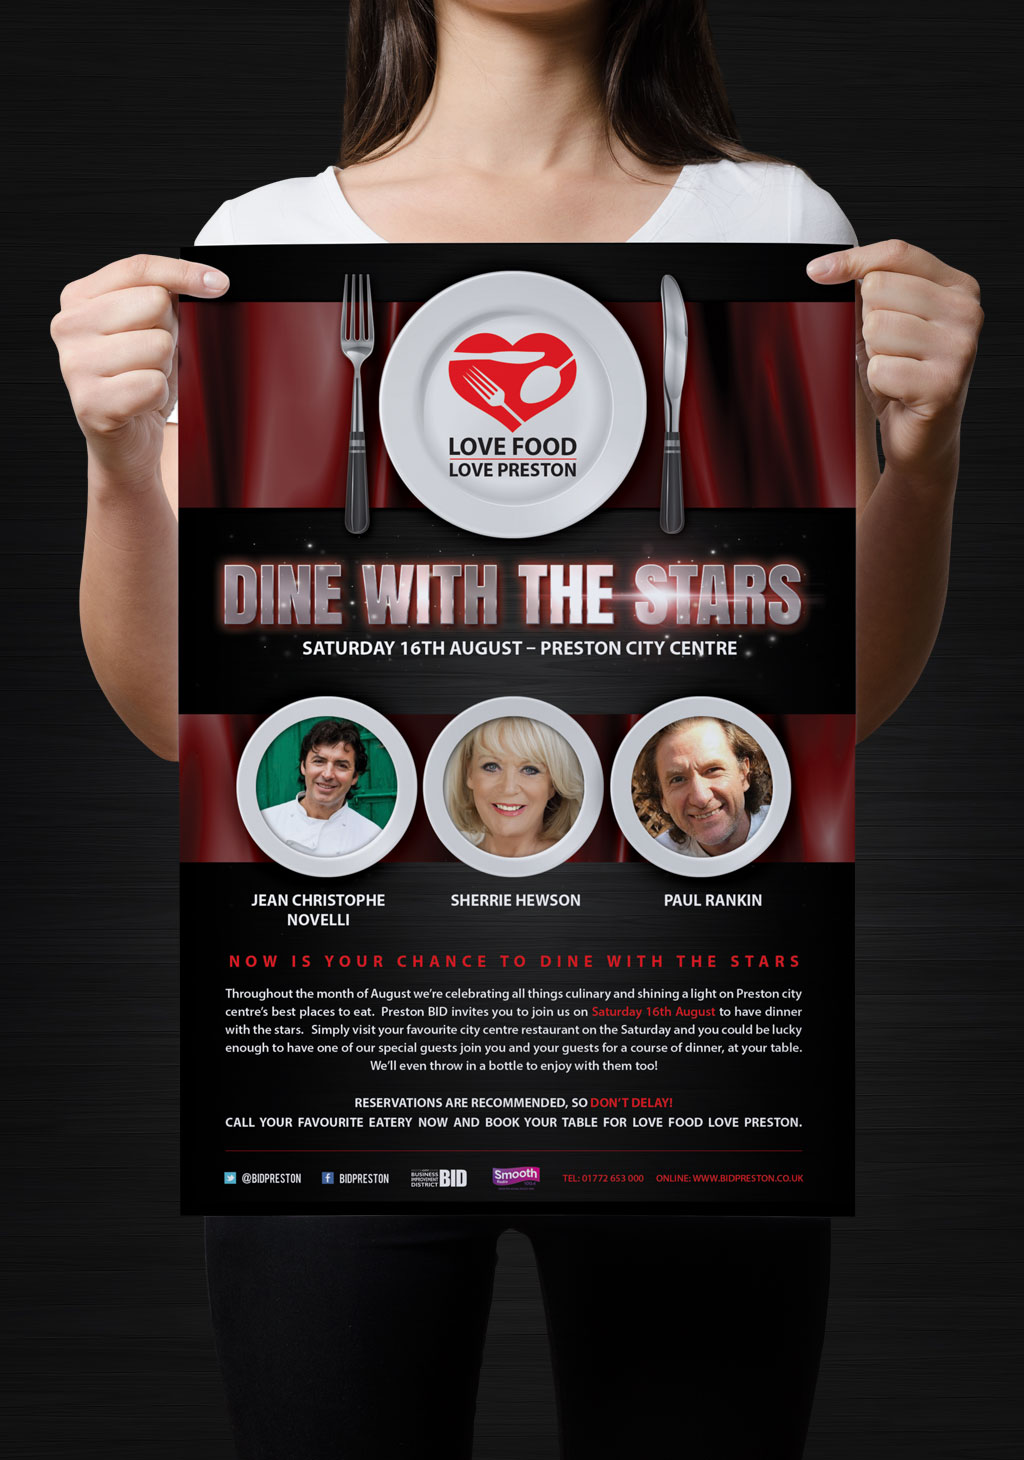 dine-with-stars-web-preview-big